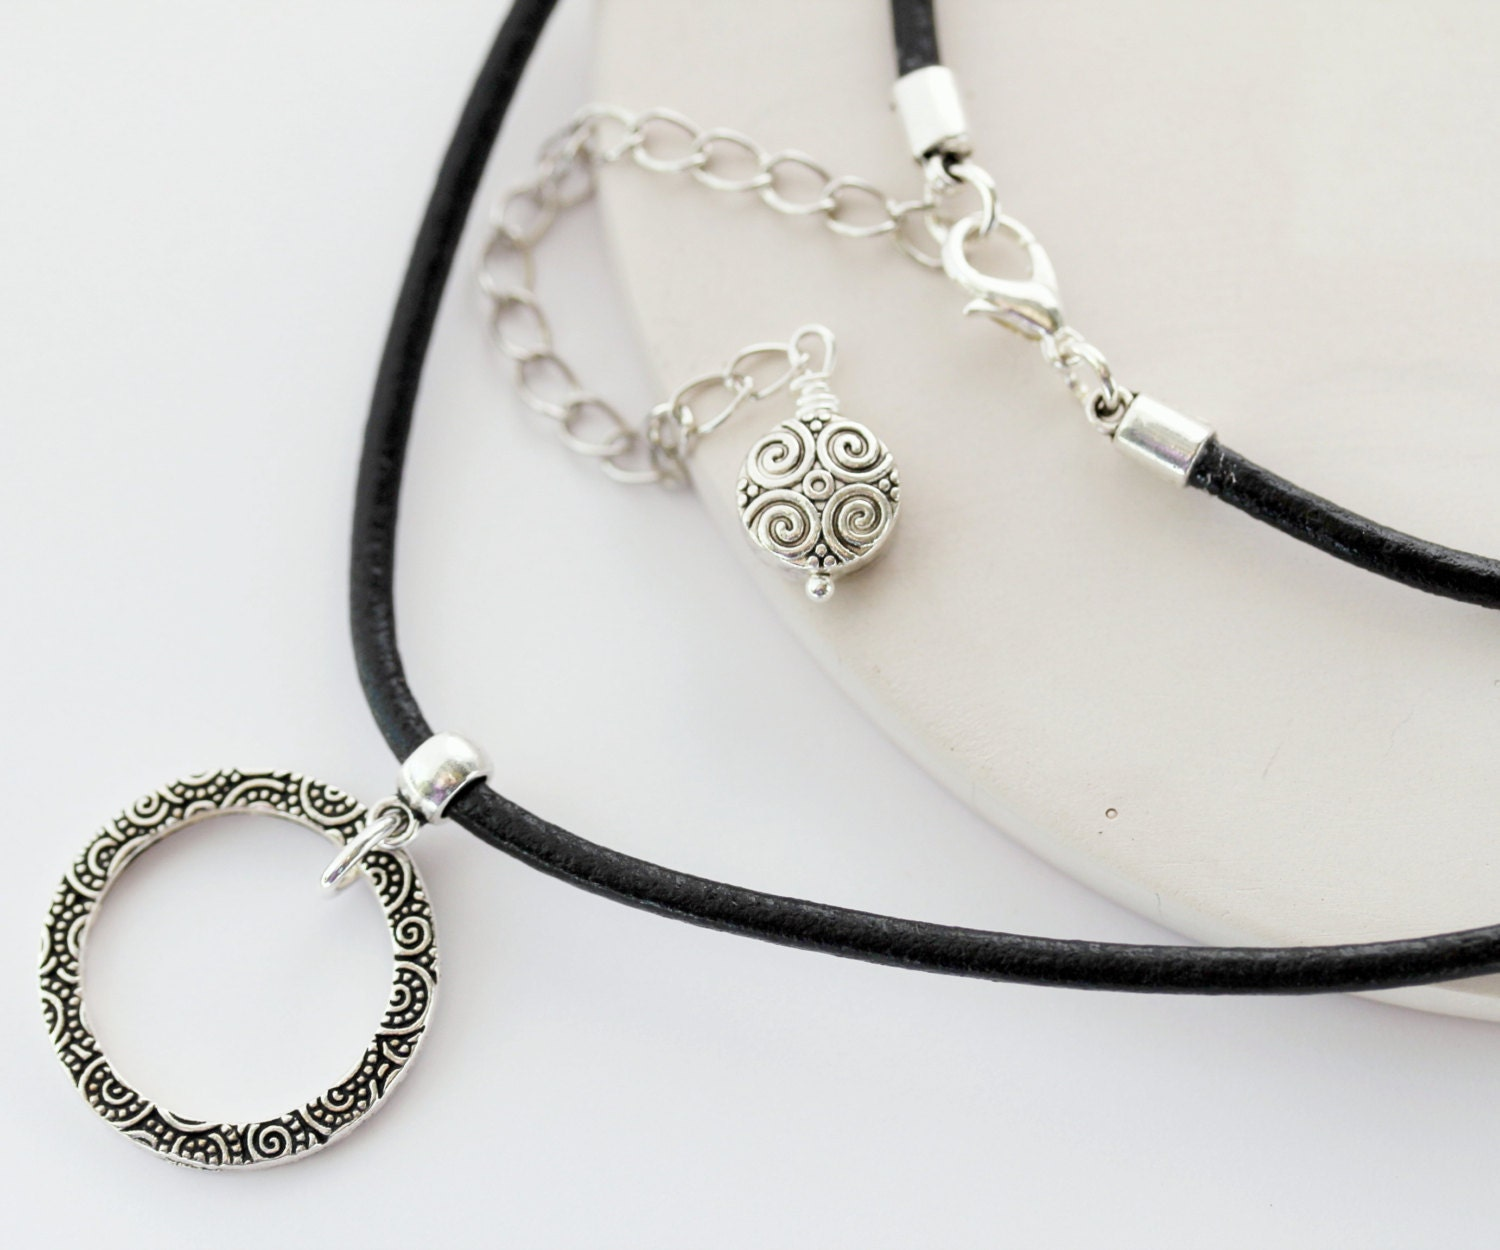 Leather Eyeglass Holder Necklace Silver Eyeglass Chain